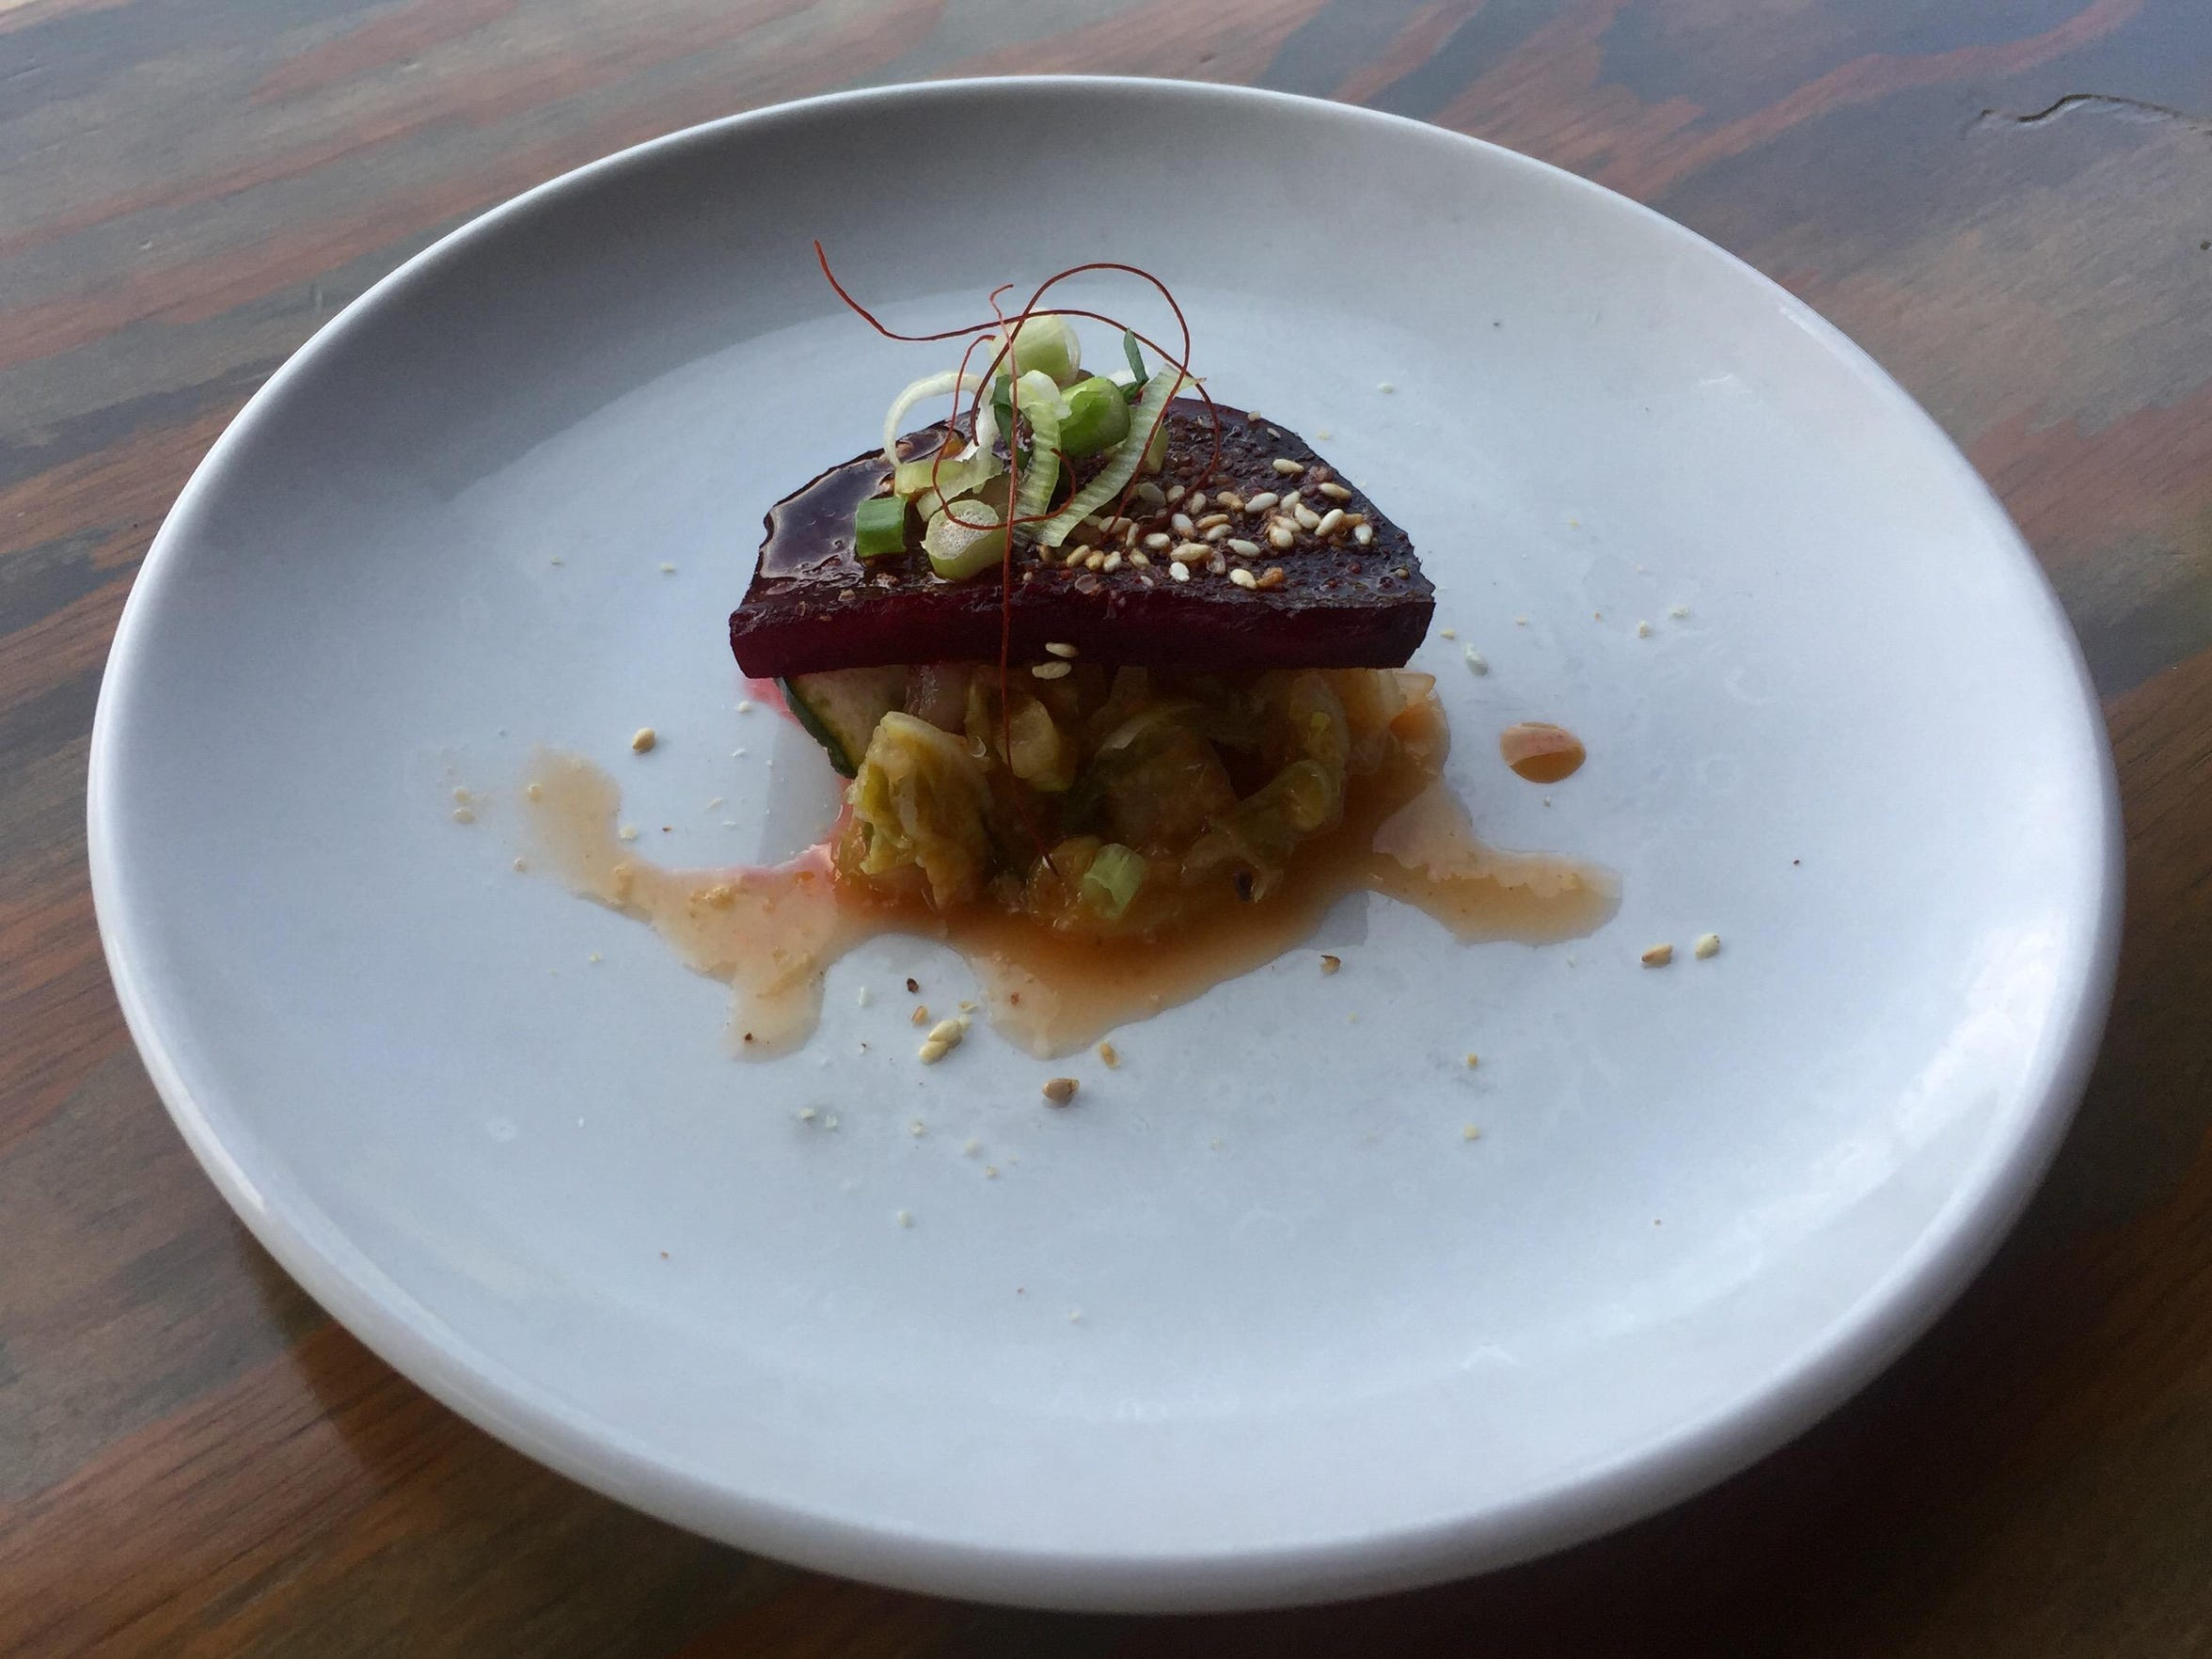 A tasting portion of roasted beets with cucumber kimchi